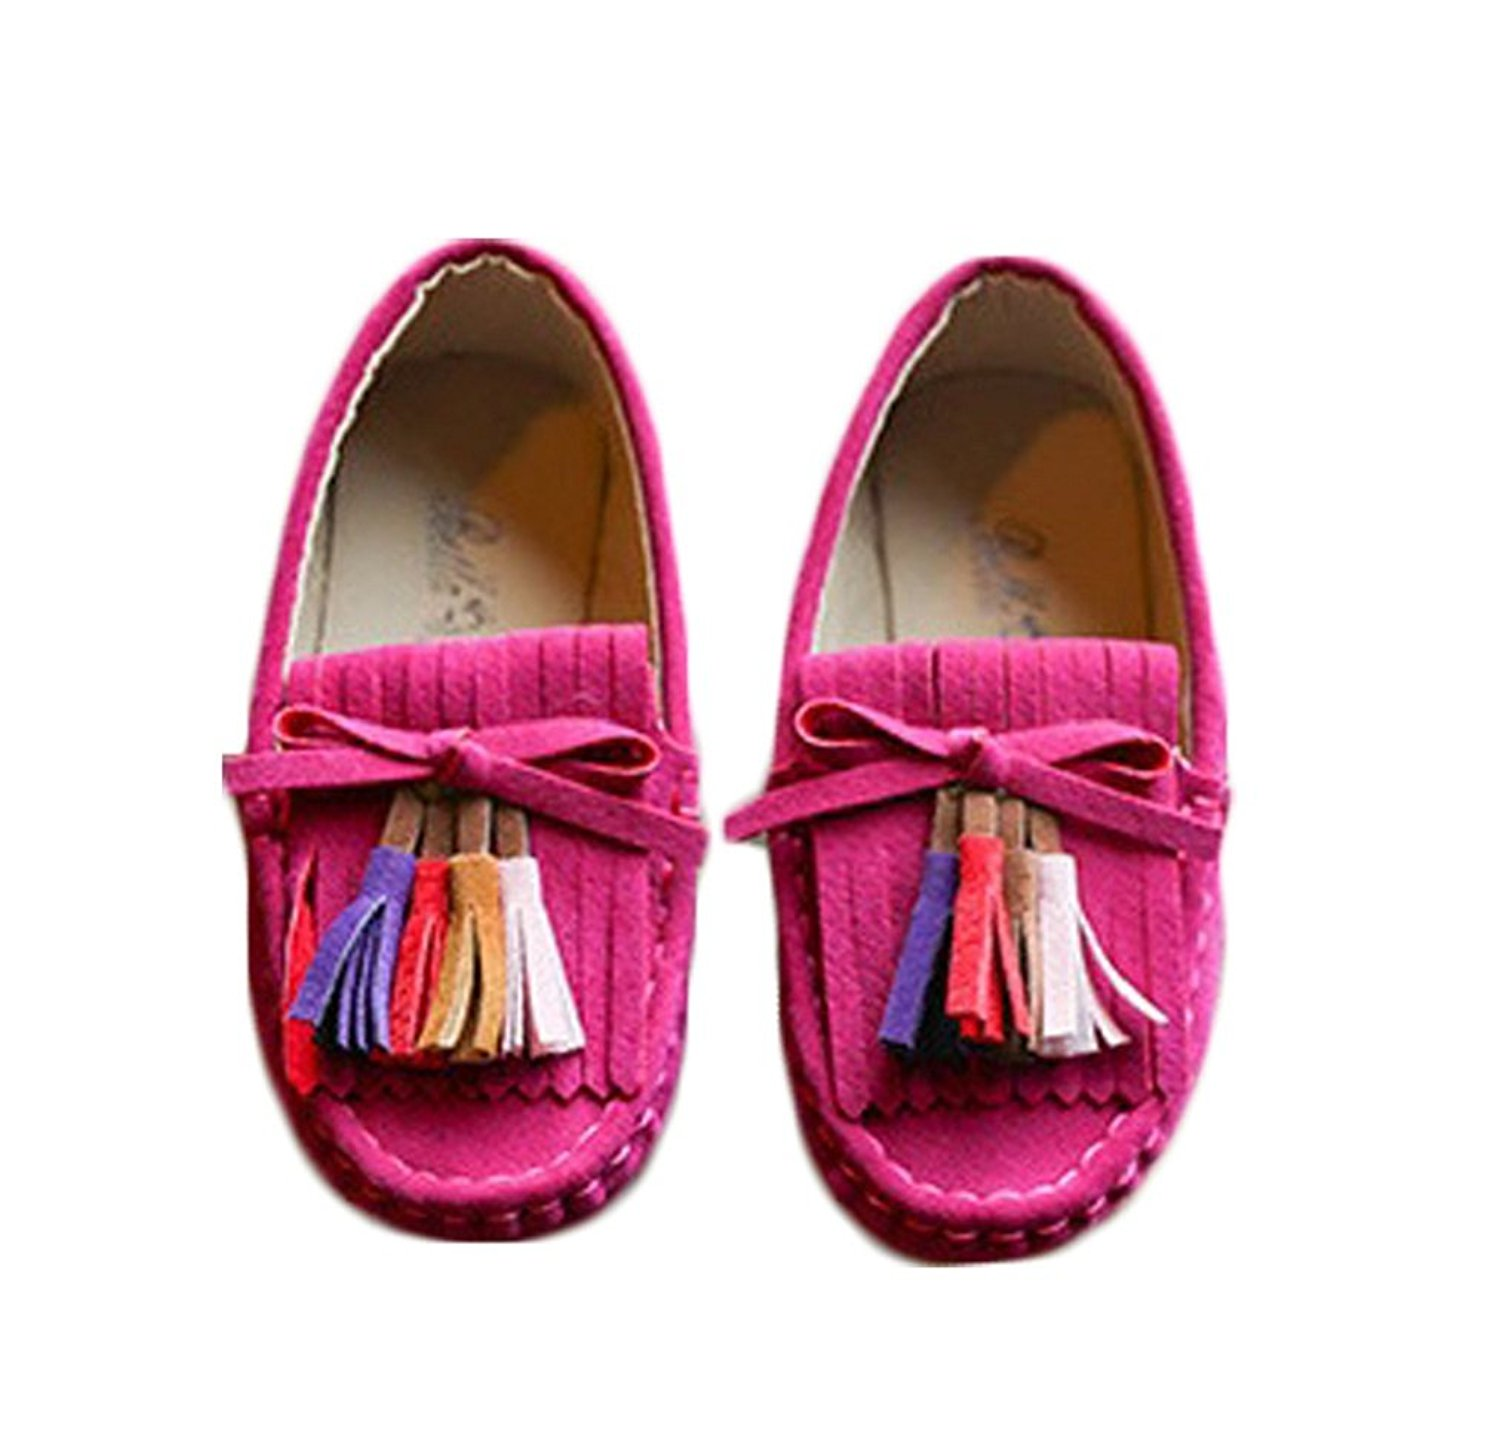 Bakerdani 2017 Style Fashion Autumn Girls Sweet Princess Doug Shoes Cute Candy Color with Tassels